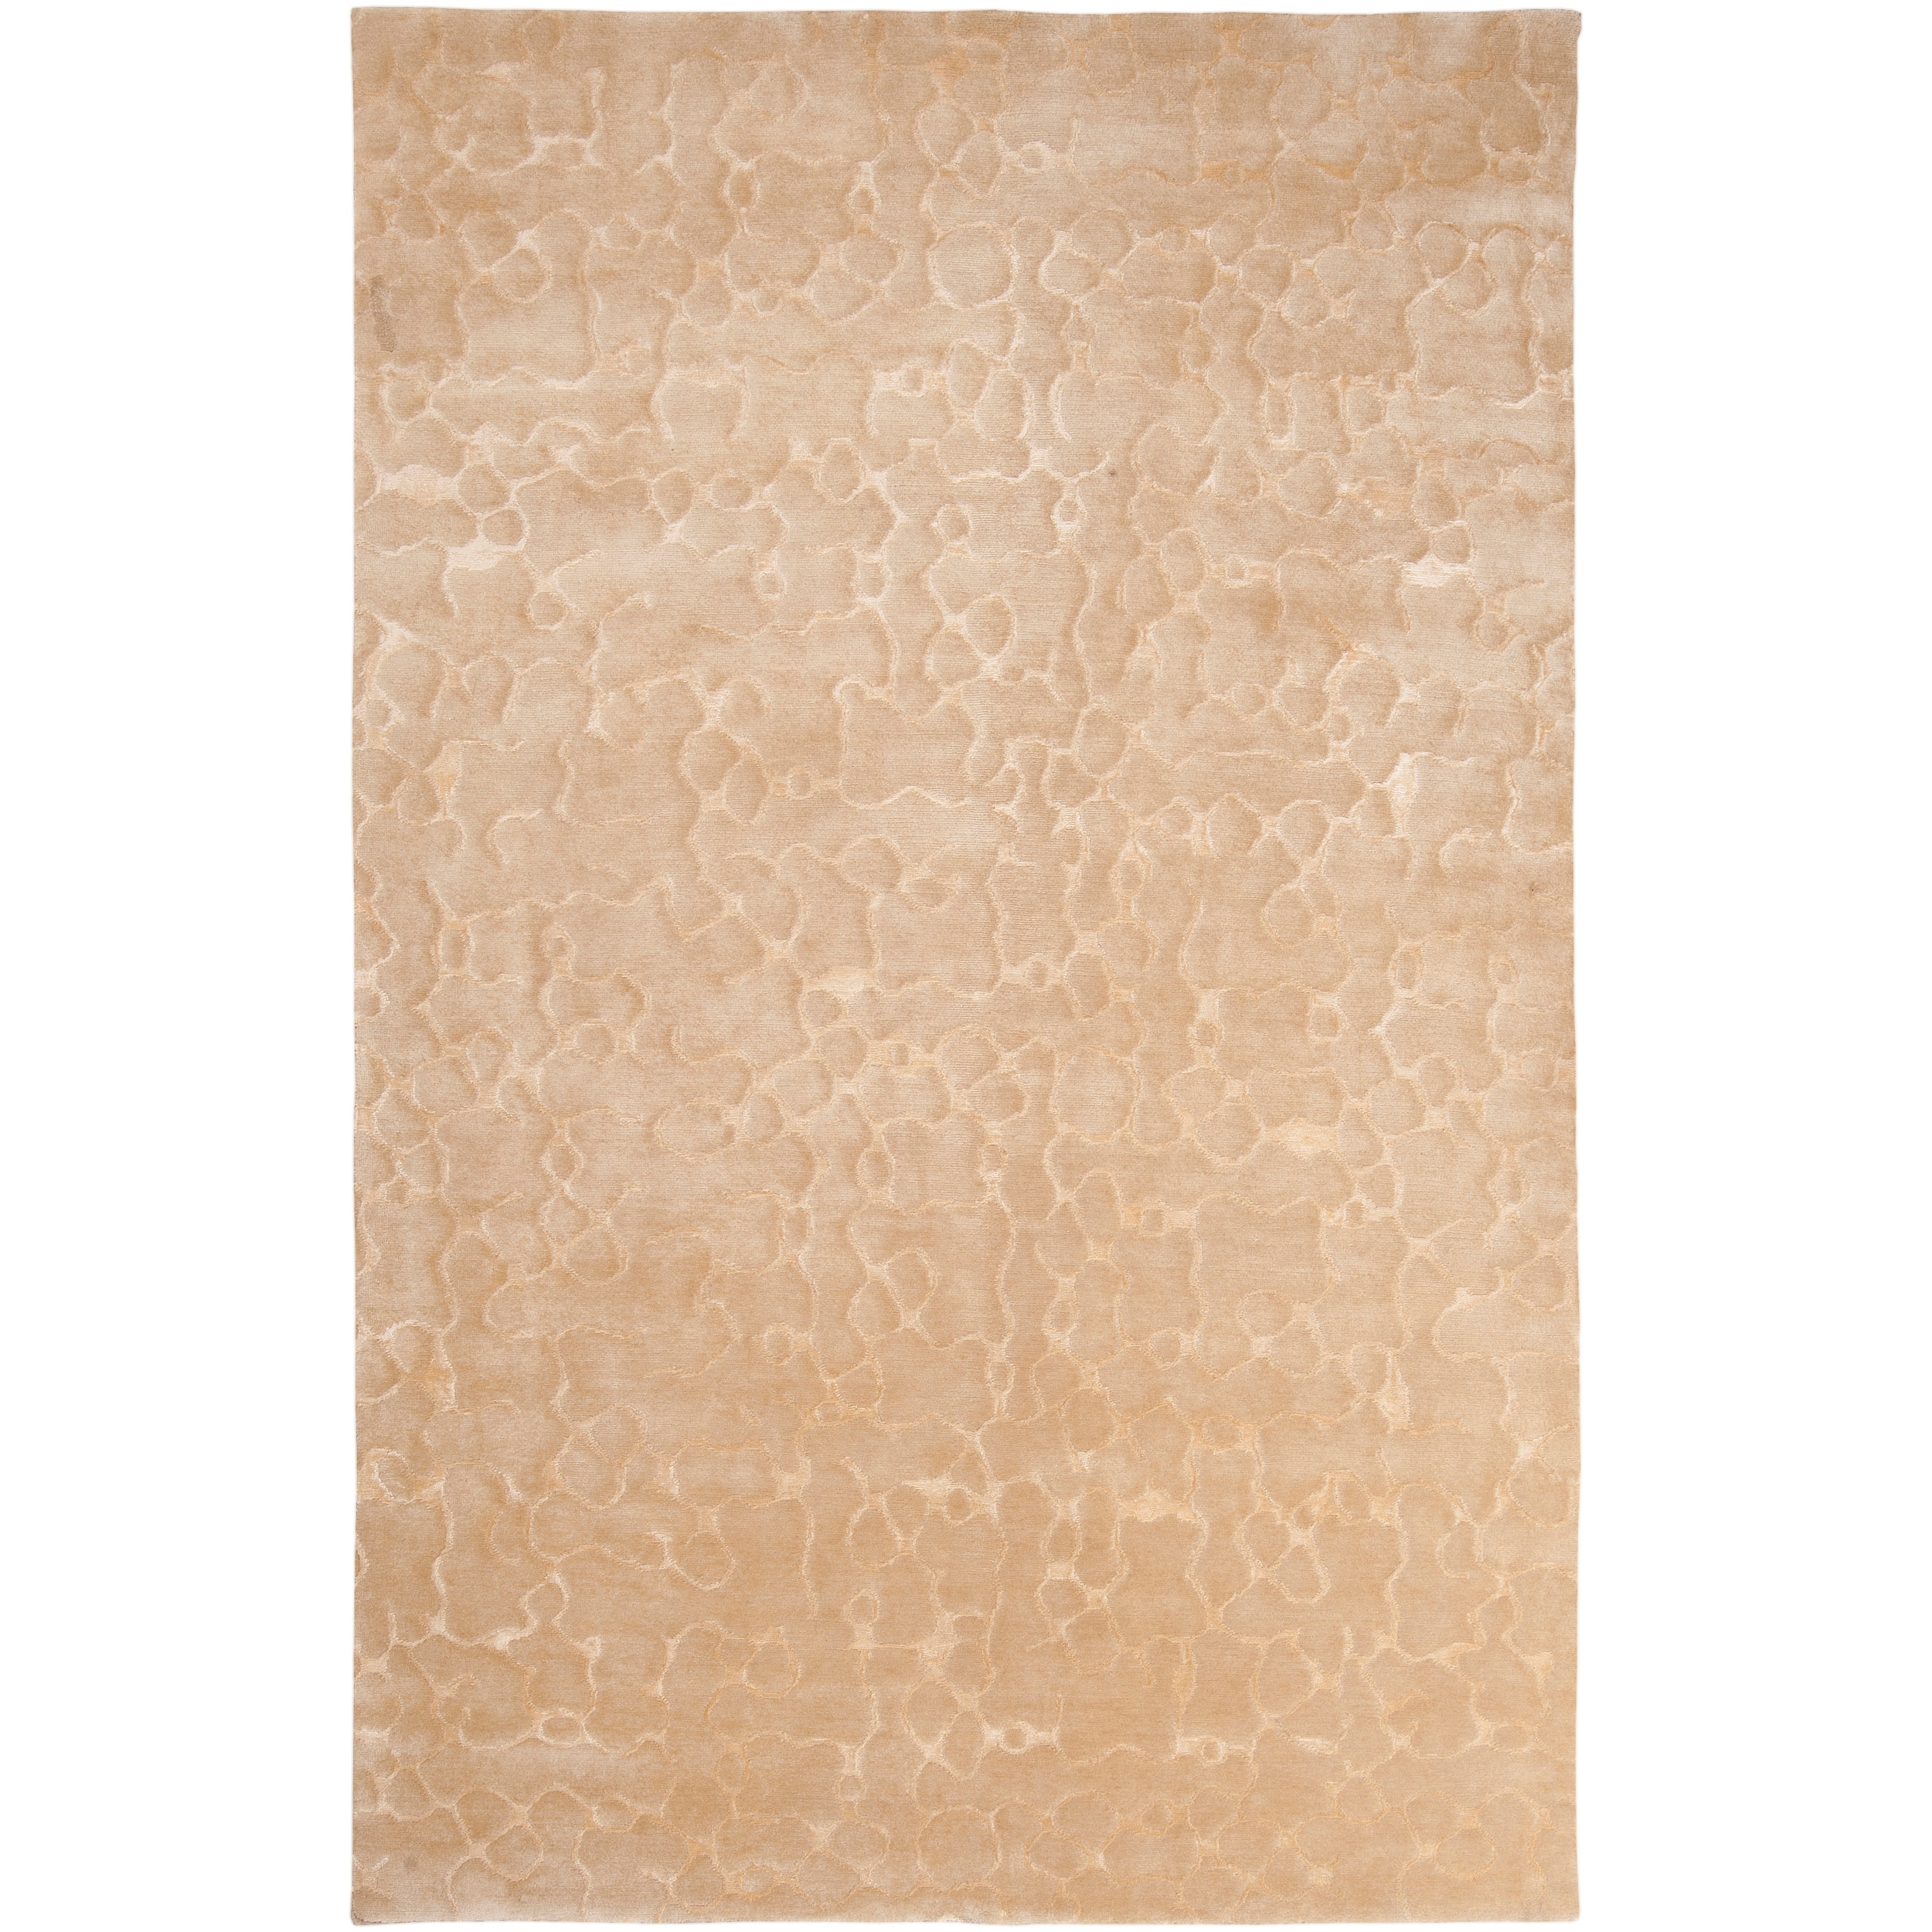 Hand Knotted Beige Abstract Design Wool Rug (9' x 13')